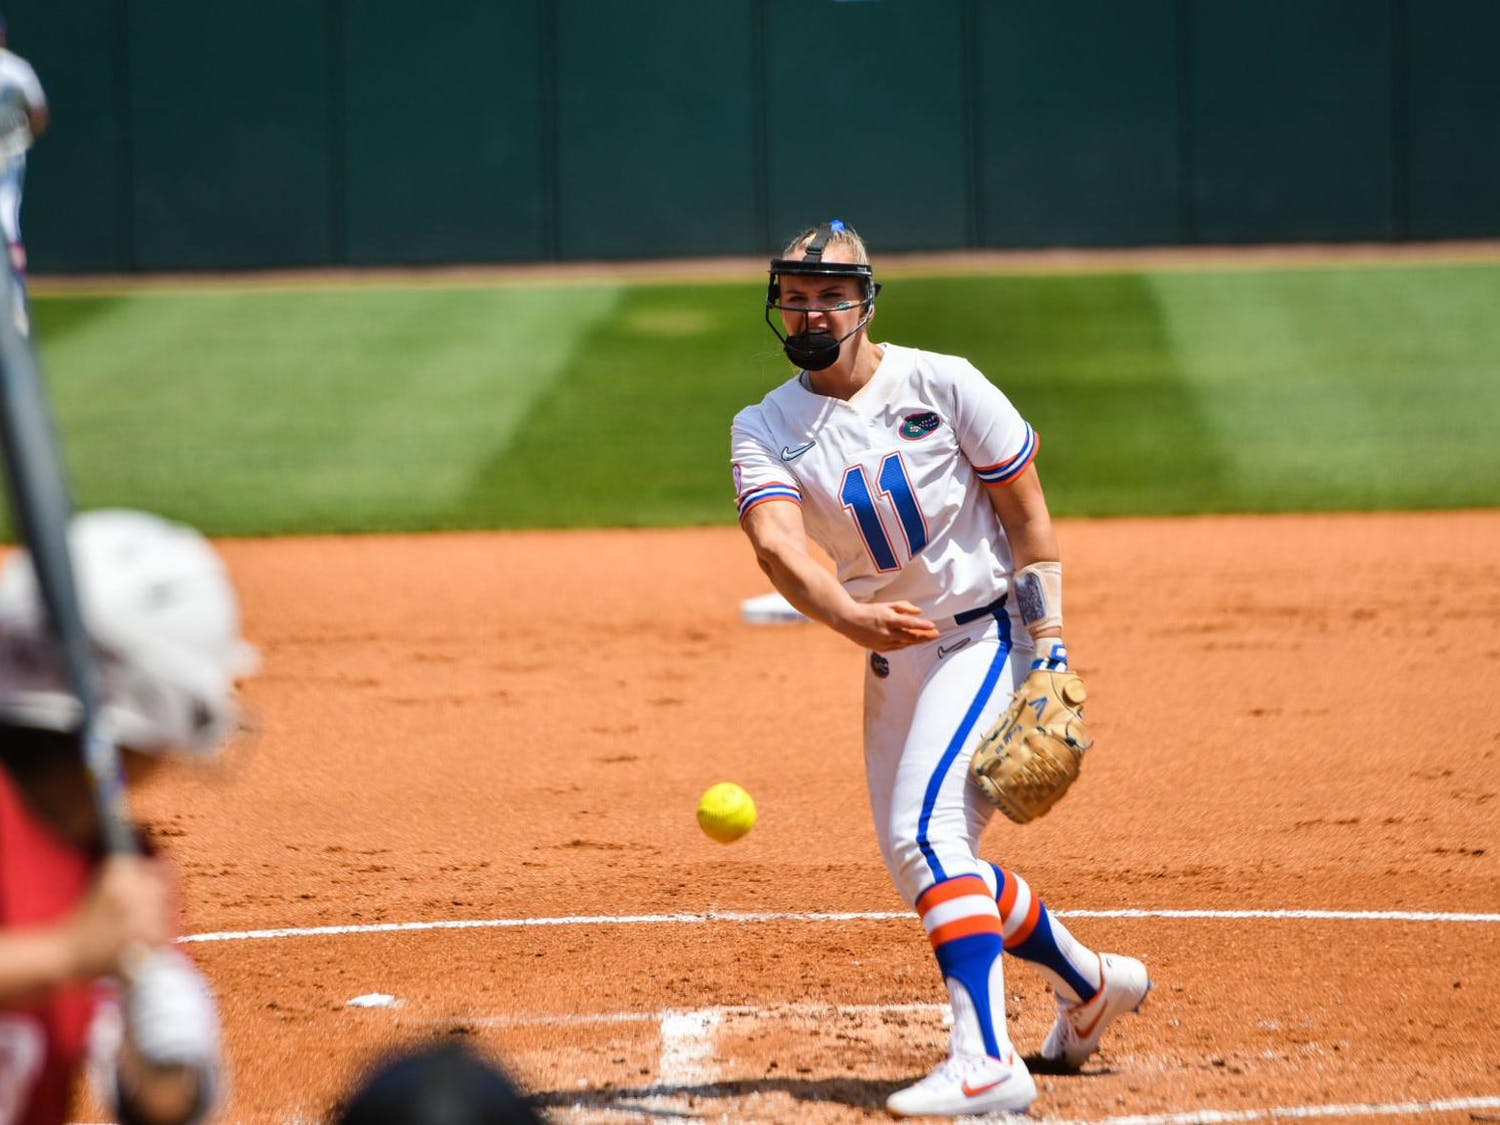 Pitcher Kelly Barnhill struck out seven batters en route to UF's victory over Tennessee 3-0 in the NCAA Super Regionals on Friday.